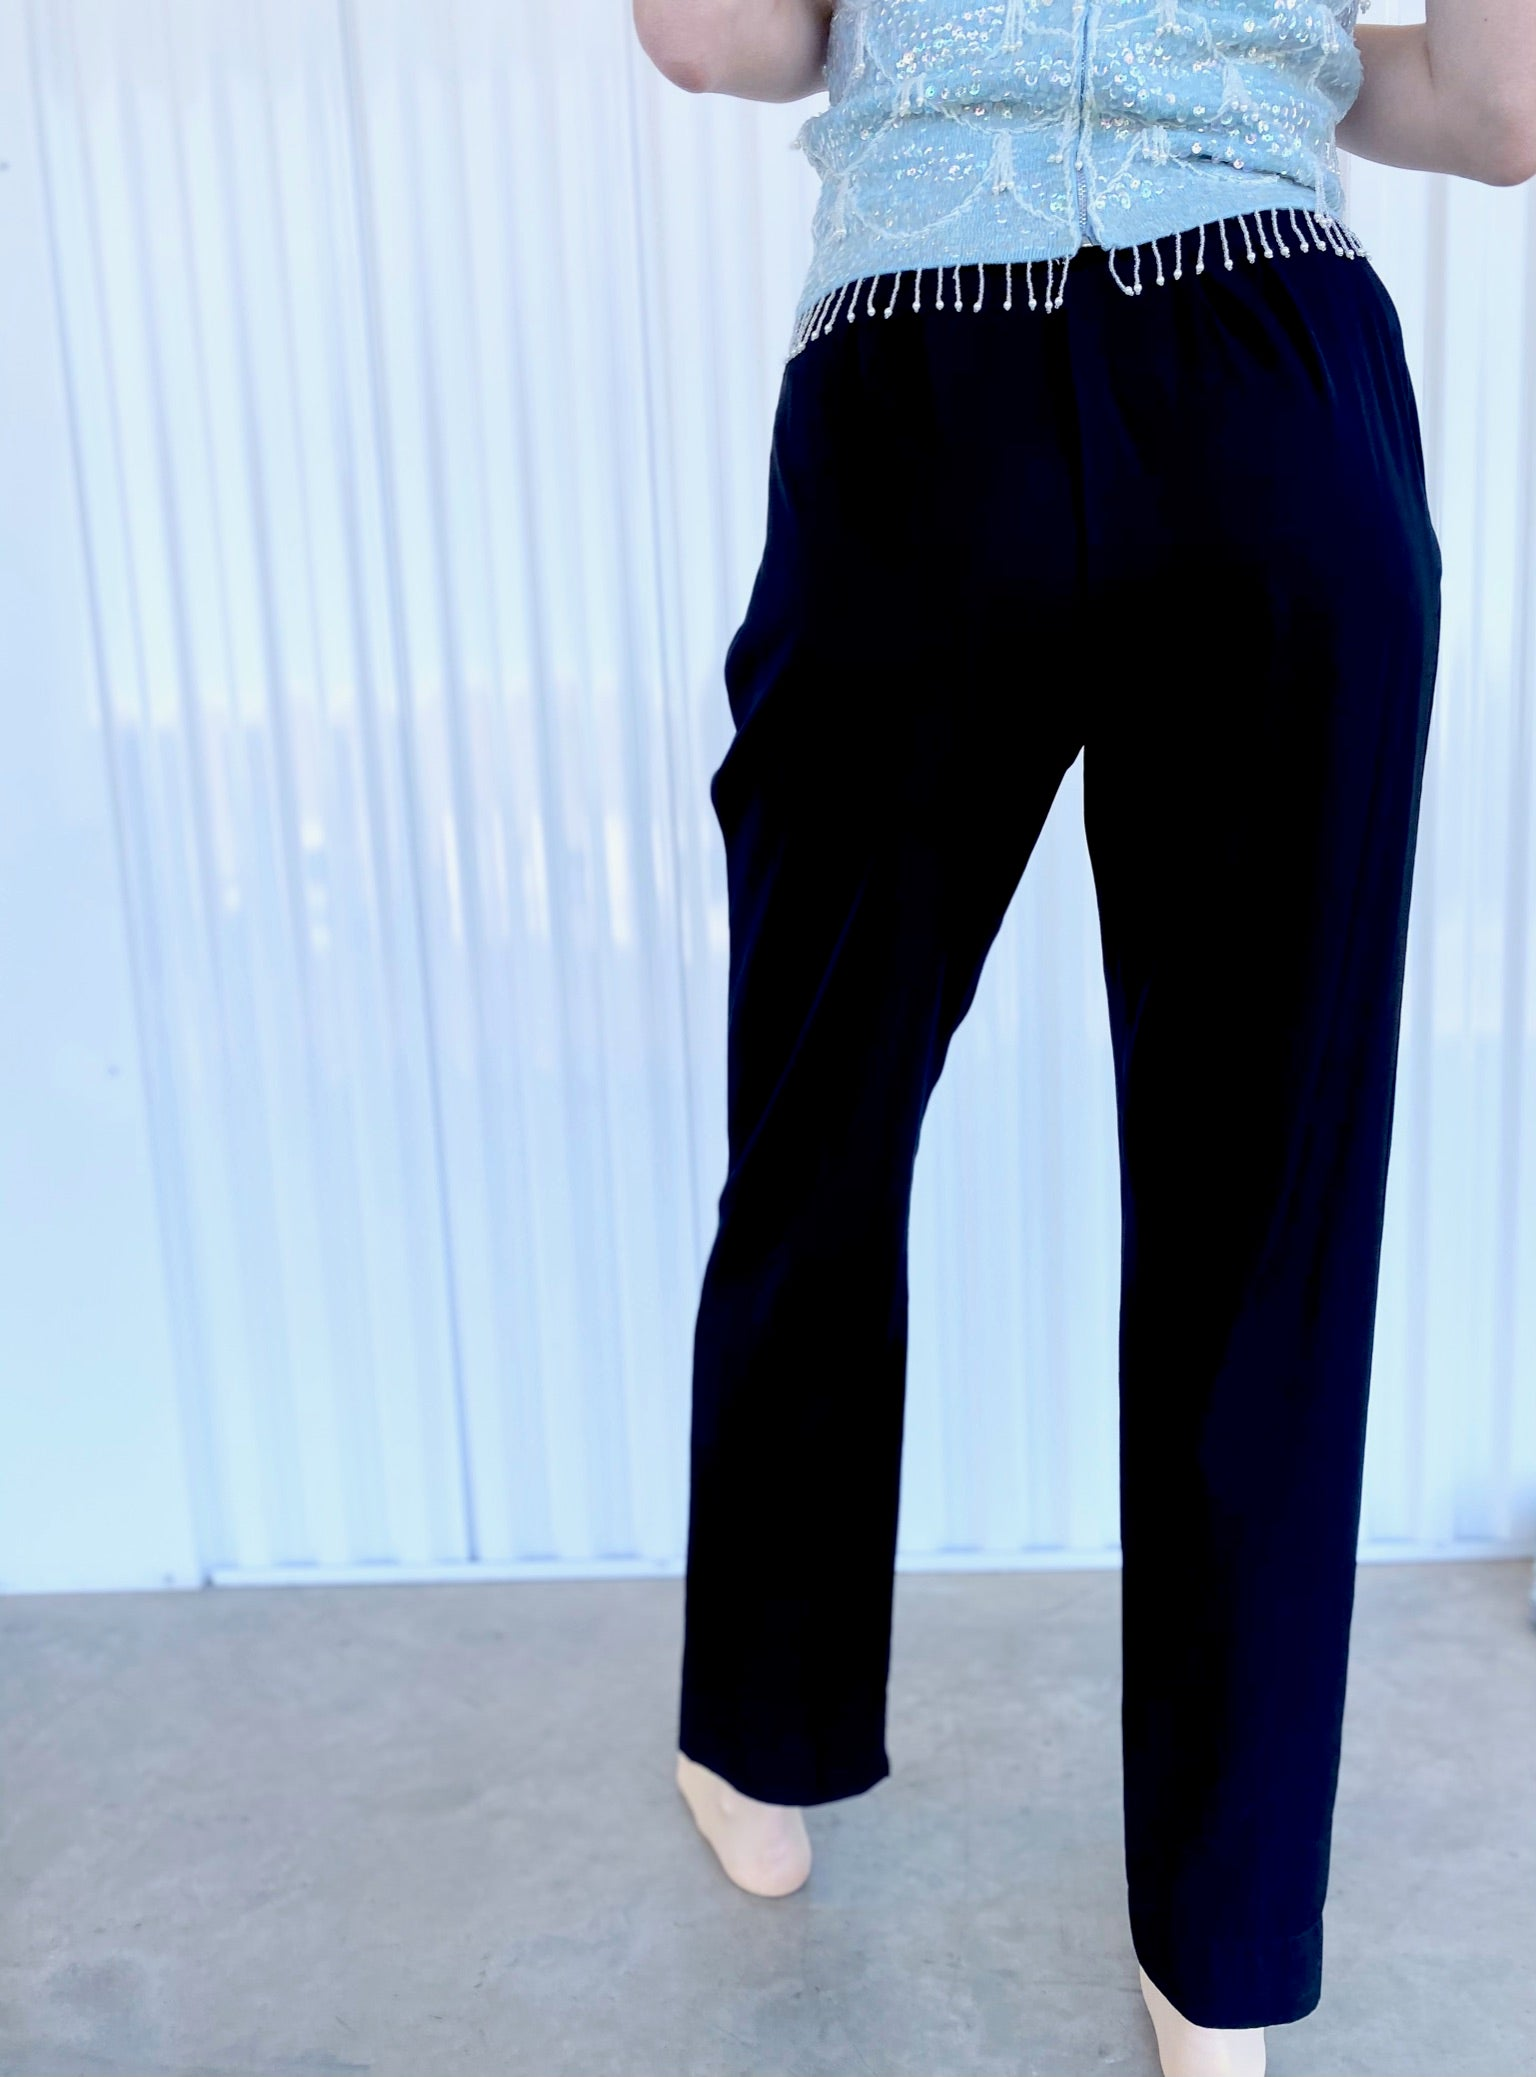 Chanel Trousers (42)